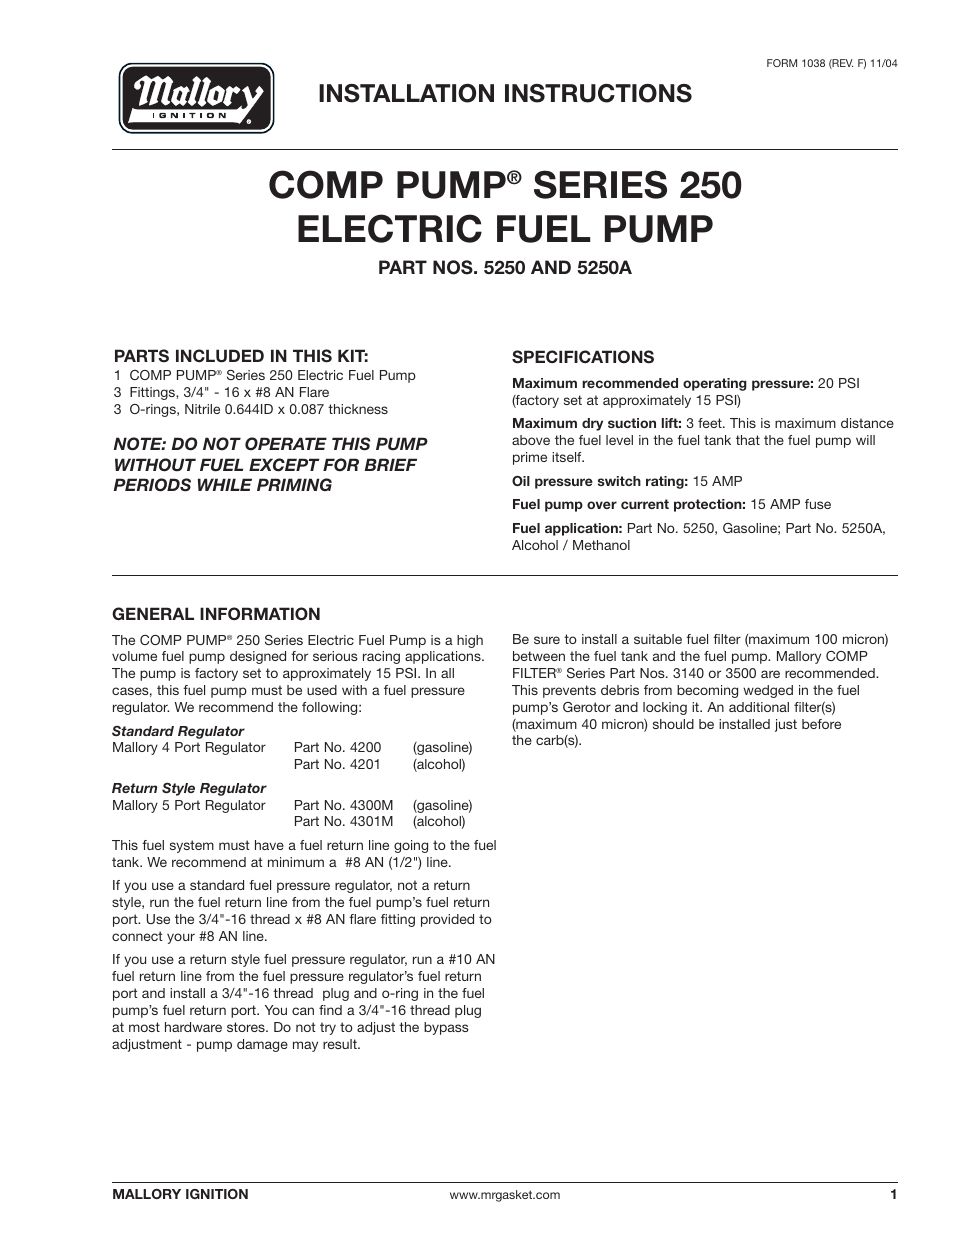 hight resolution of mallory ignition mallory comp pump series 250 electric fuel pump 5250 5250a user manual 4 pages